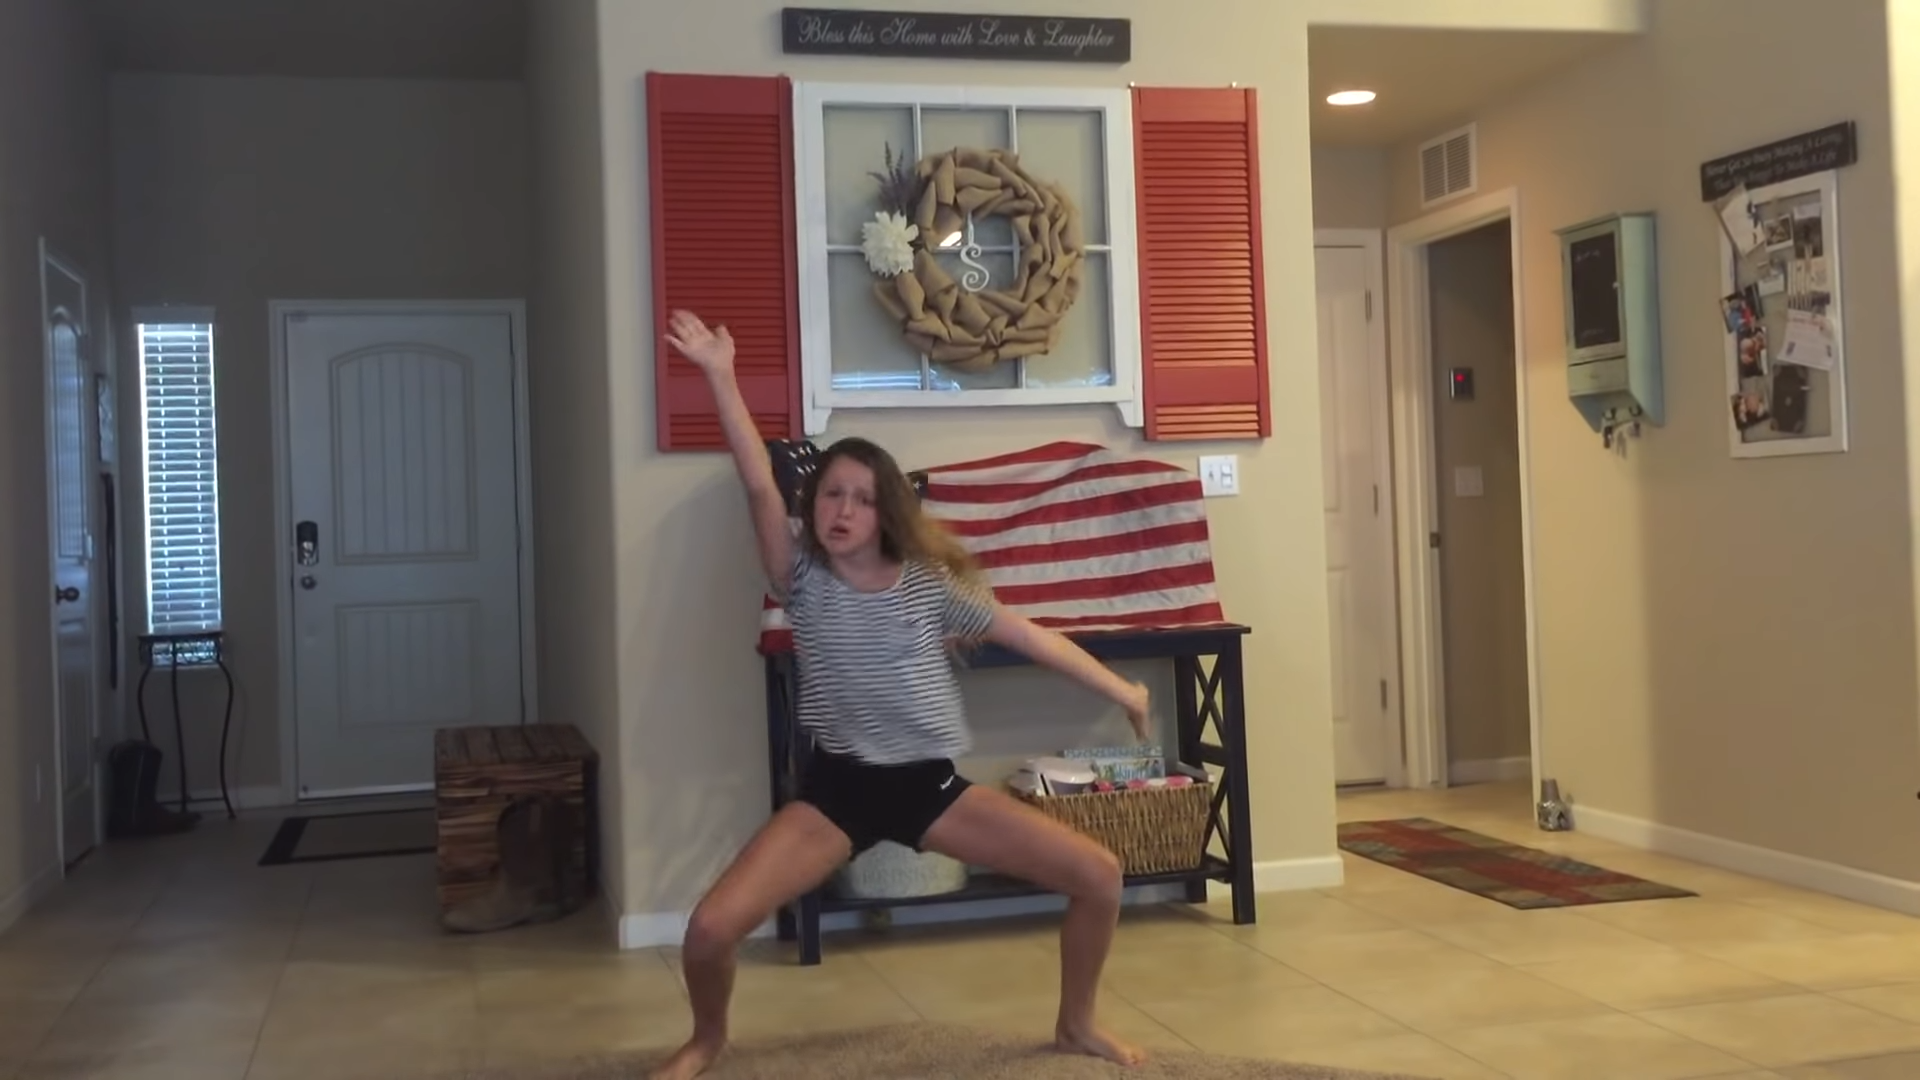 Whip Nae Nae father daughter